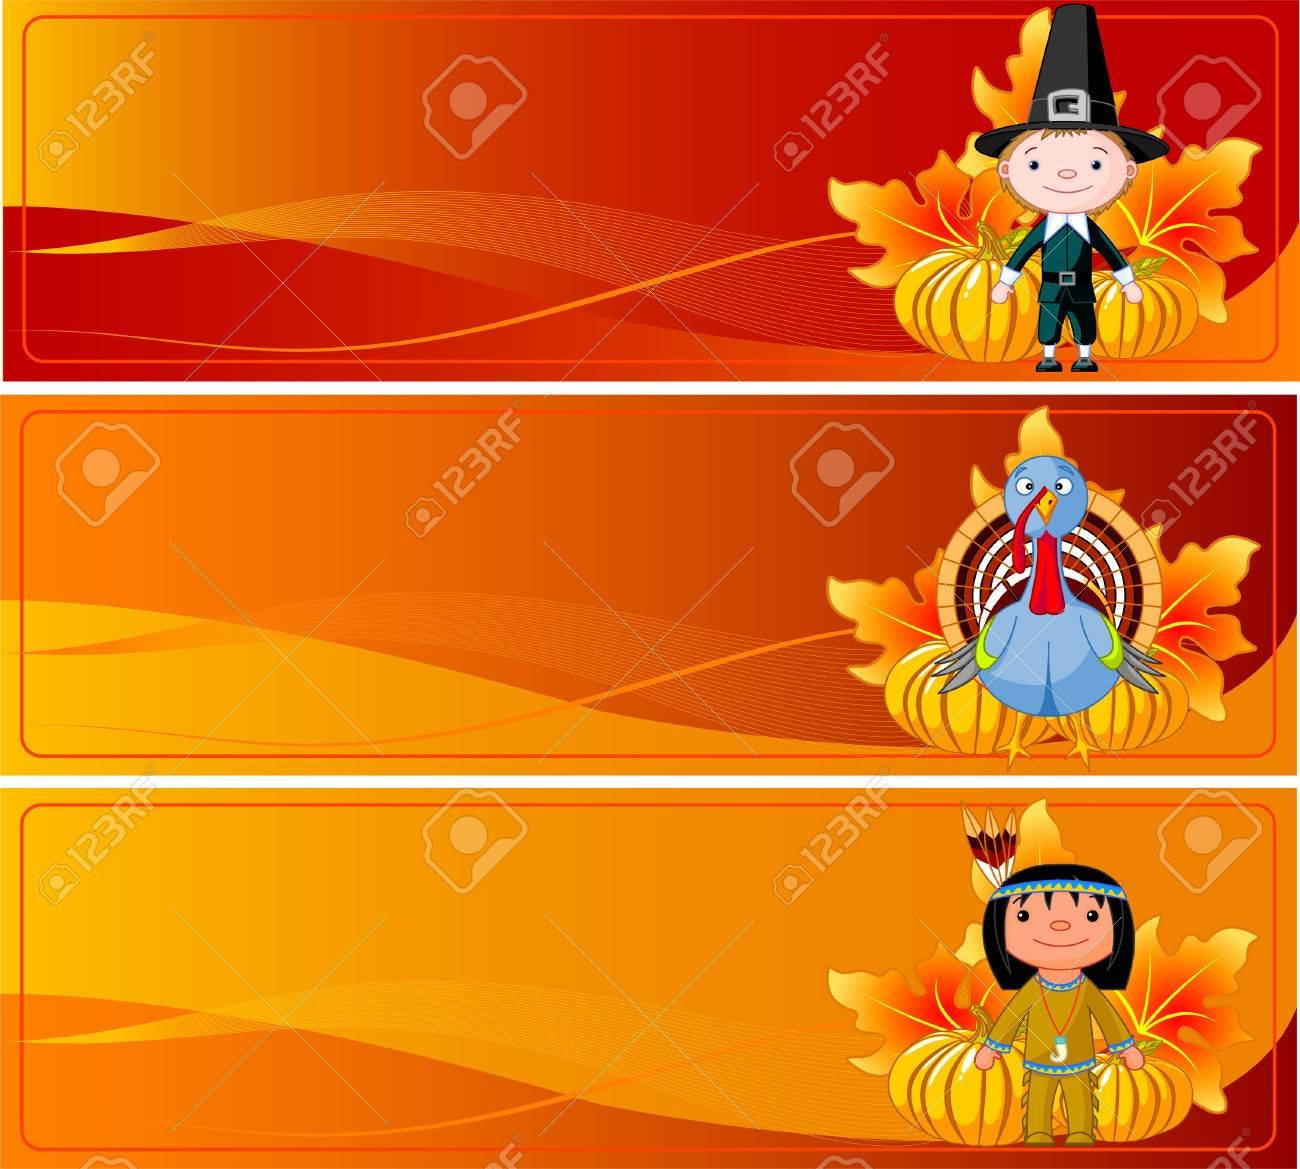 Three Cute Thanksgiving And Autumn Web Banners Royalty Free ...